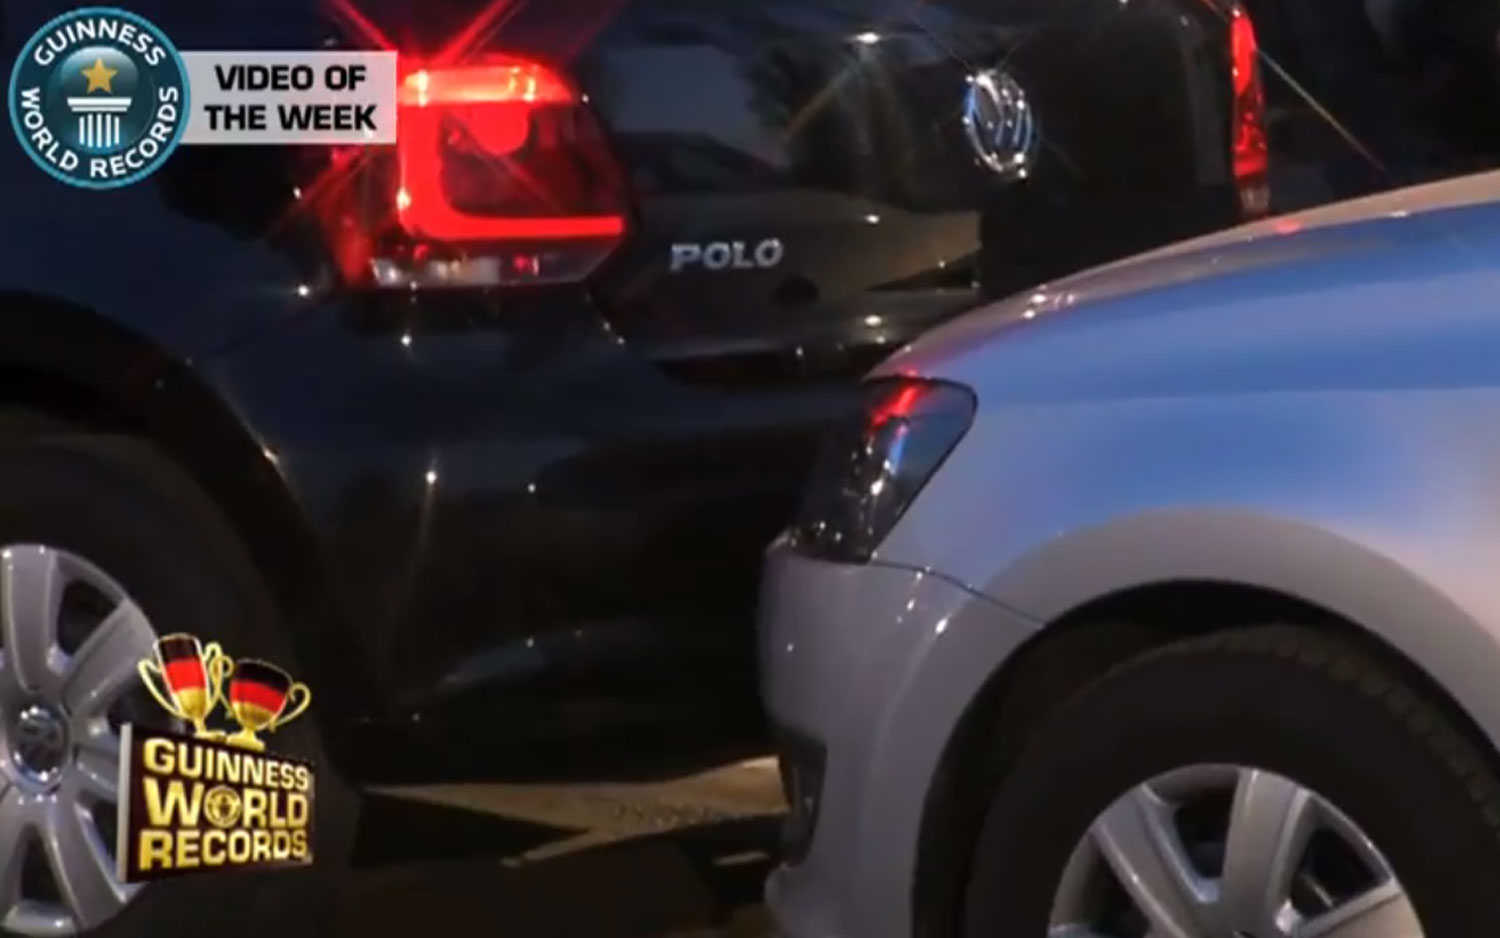 VW Polo Guinness World Record Parallel Parking 71